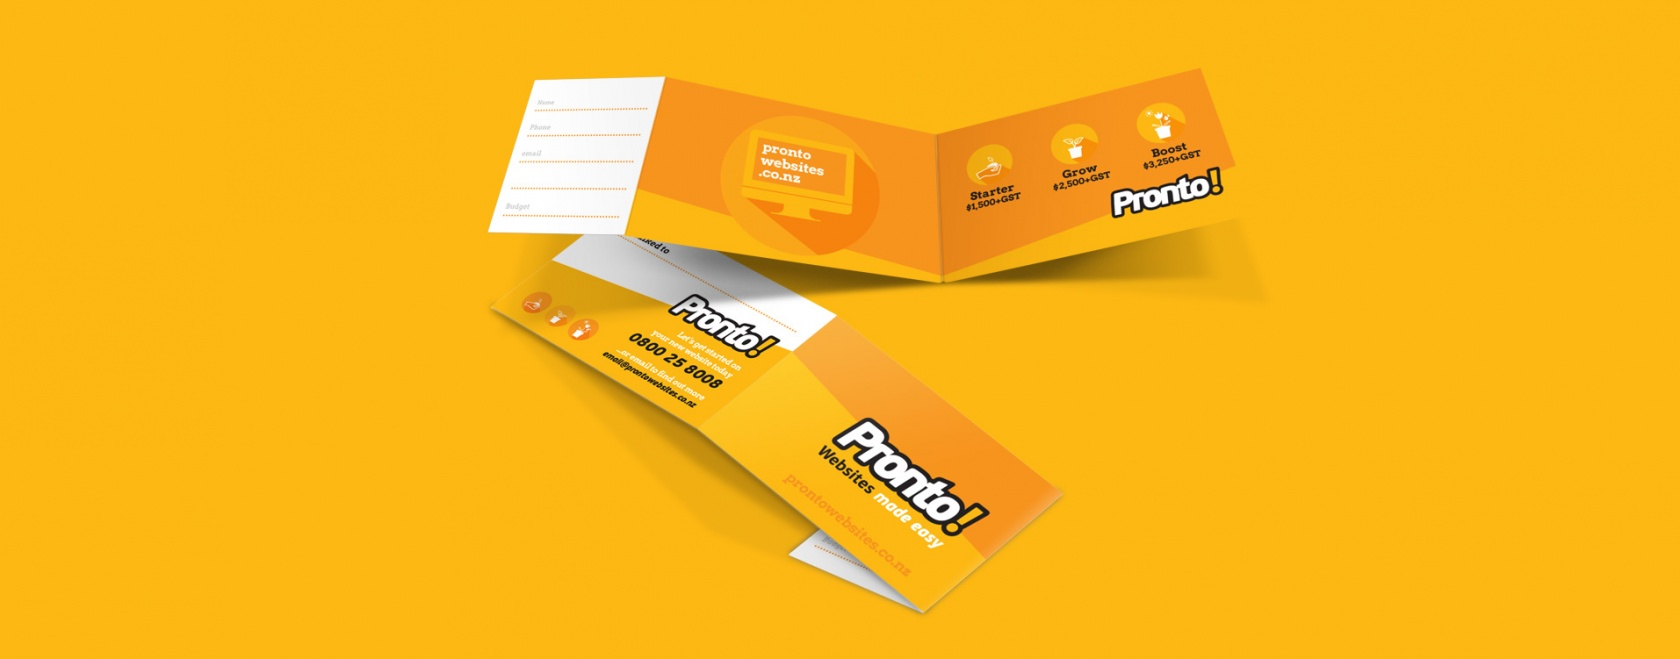 project-pronto-cards